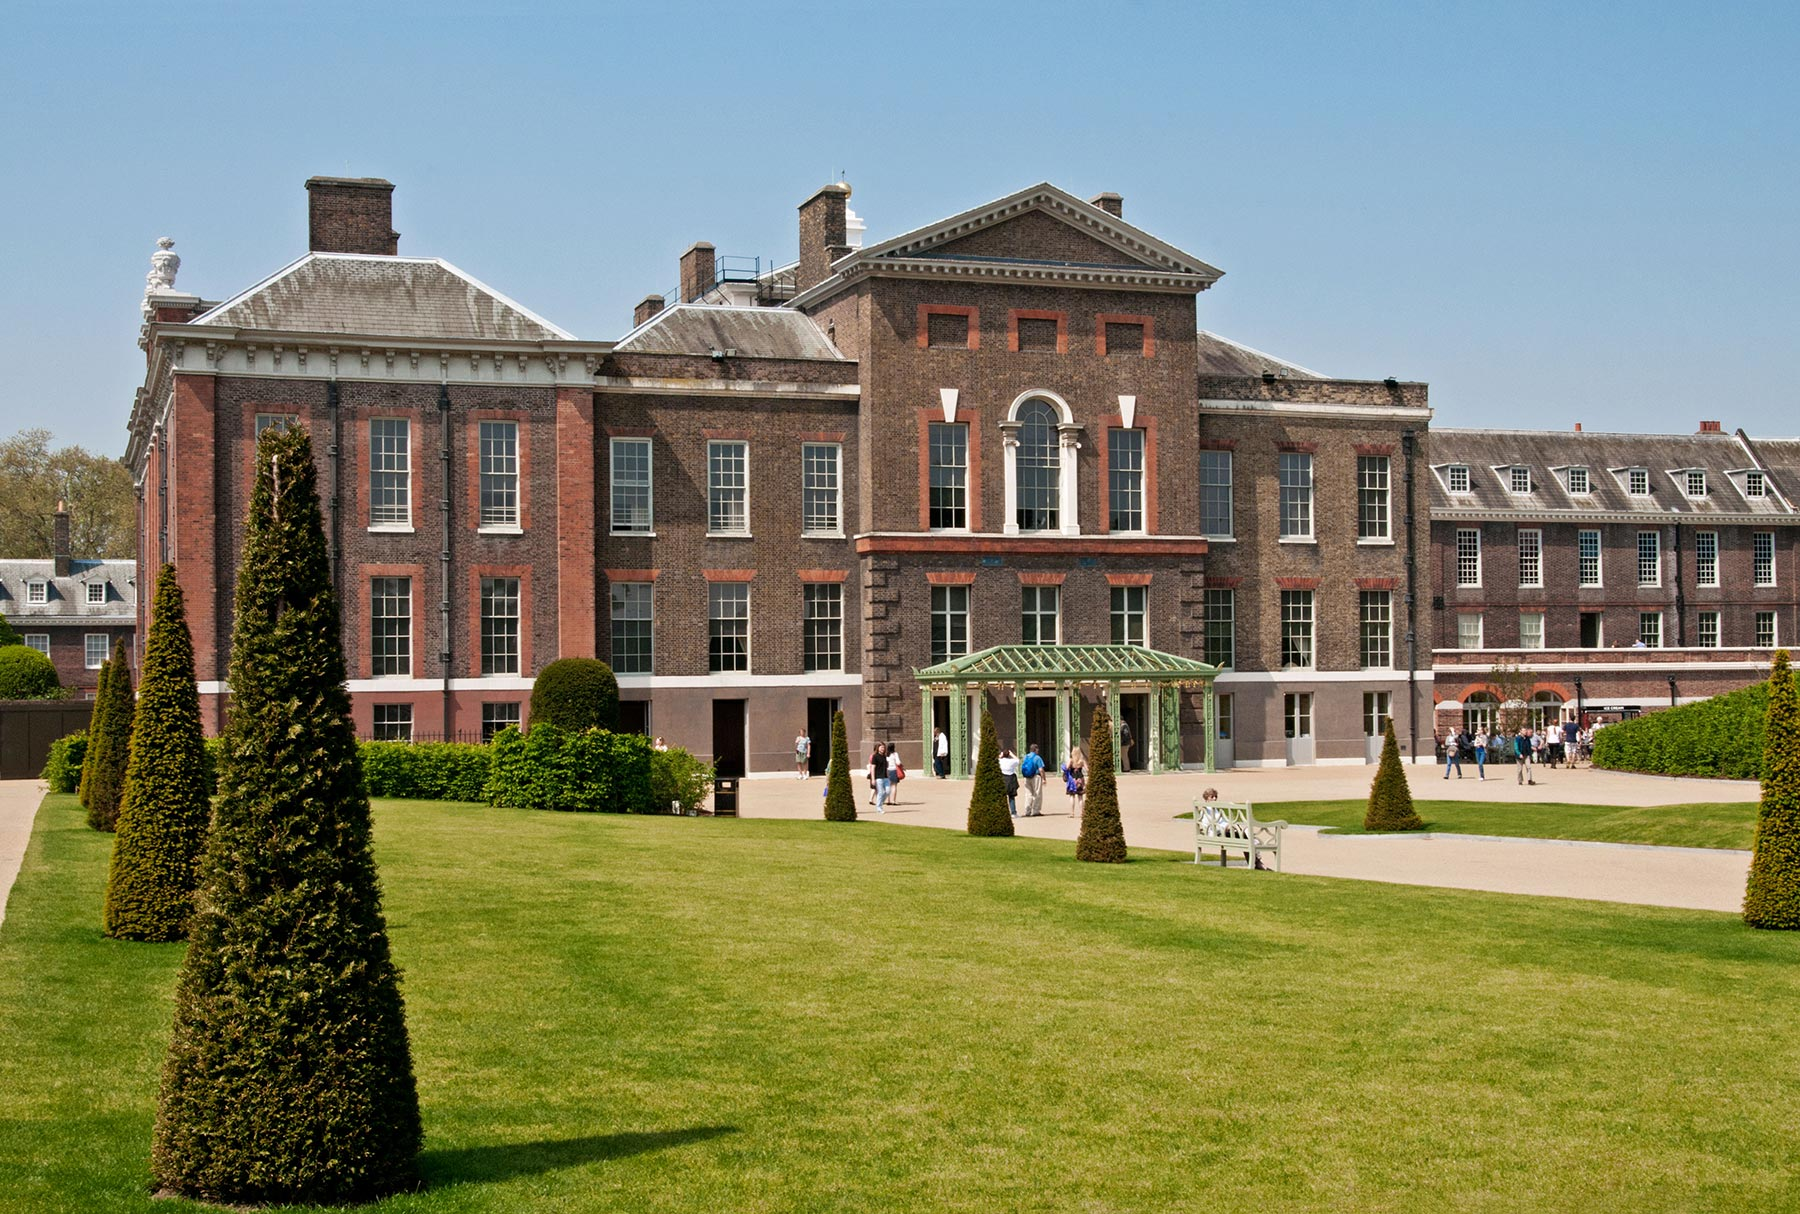 Kensington Palace GHK Architects